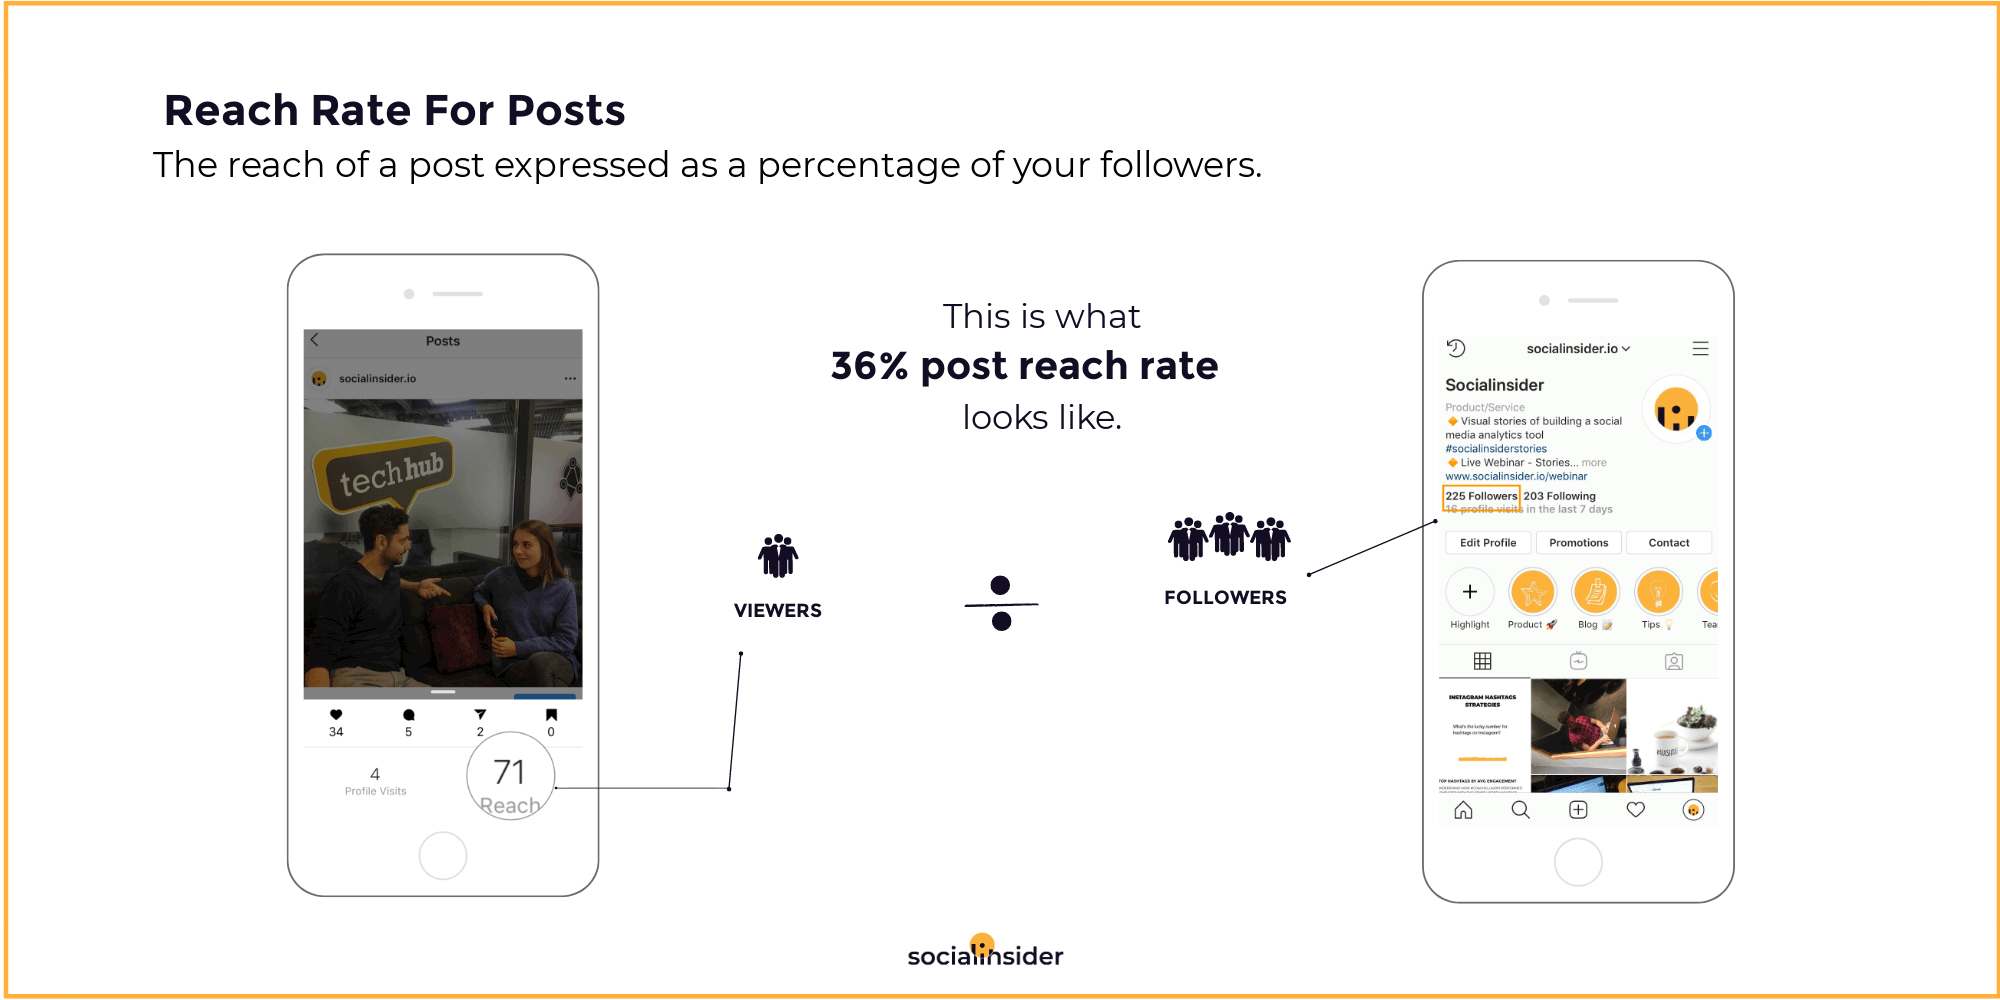 The reach of a post expressed as a percentage of your followers